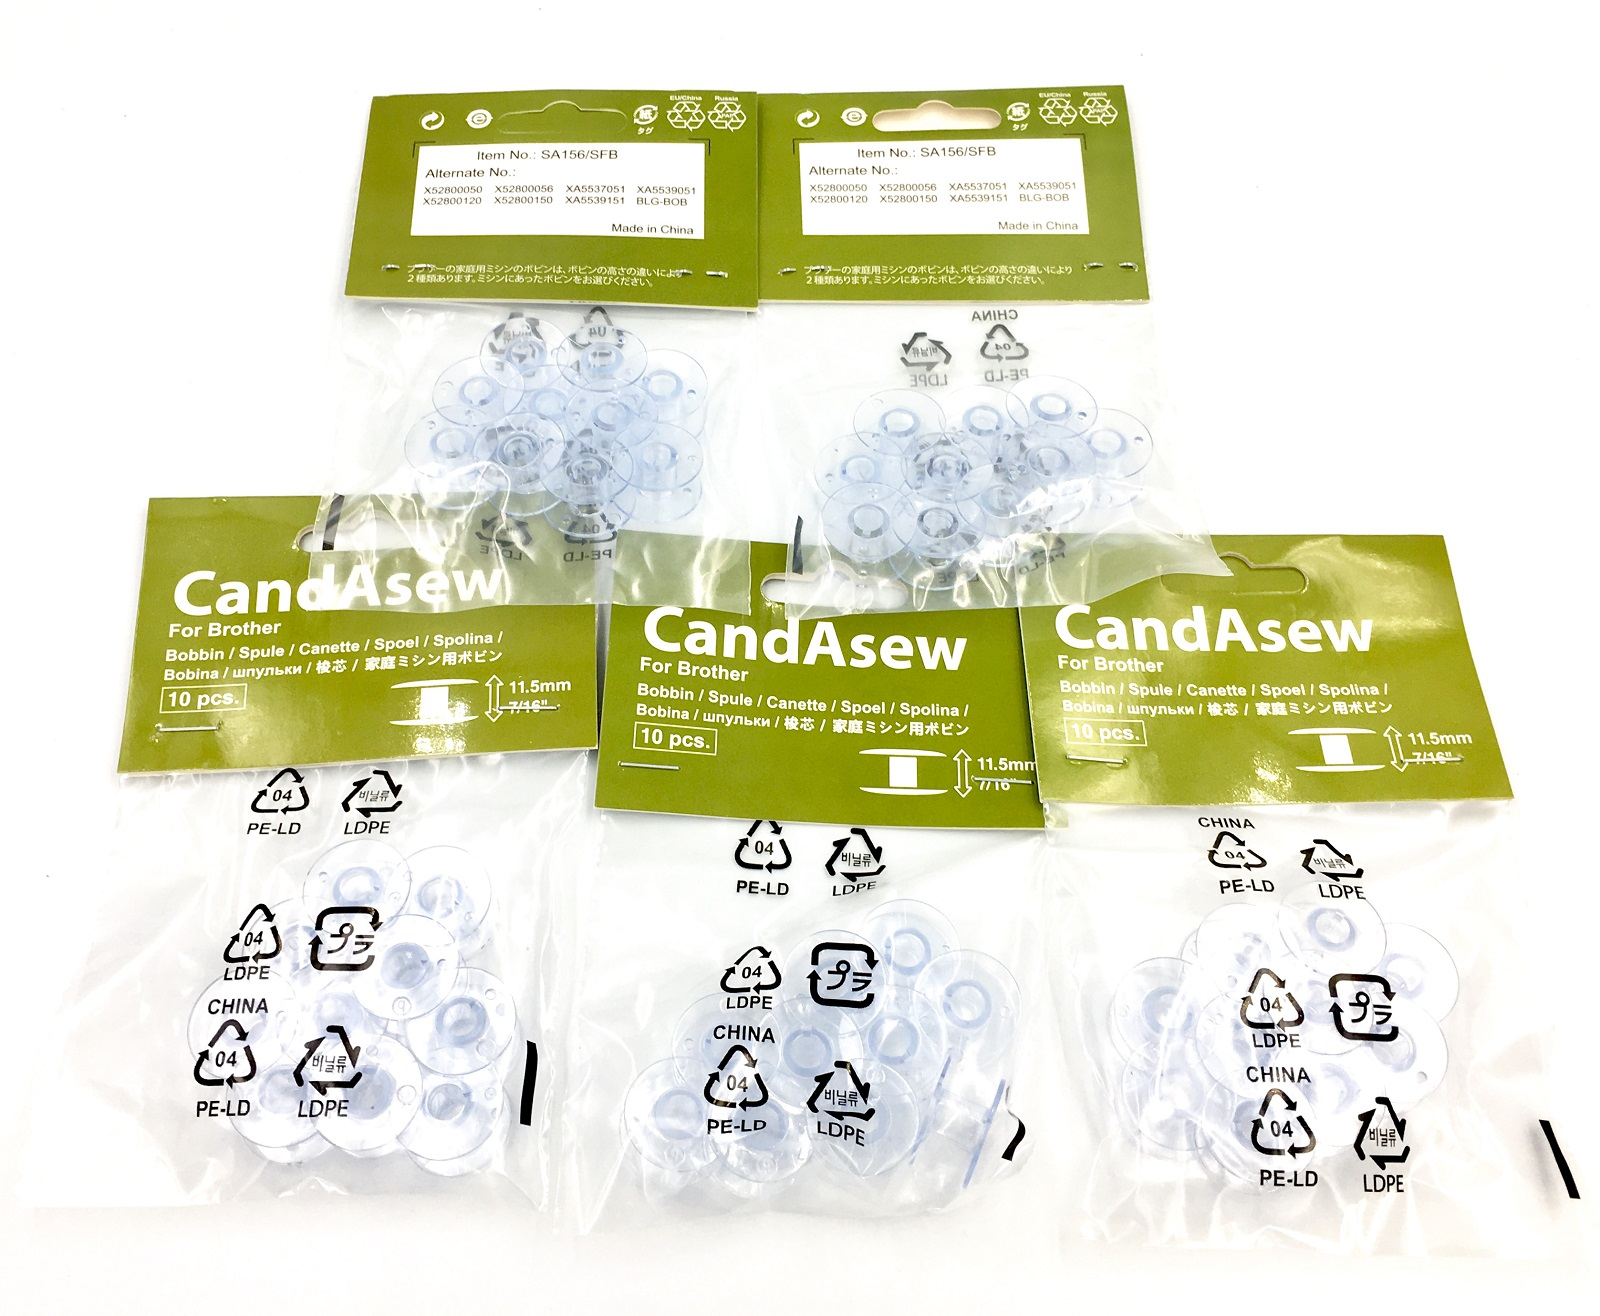 Candasew 11.5mm Bobbin for Brother - 50 Pack (SFB, SA156)